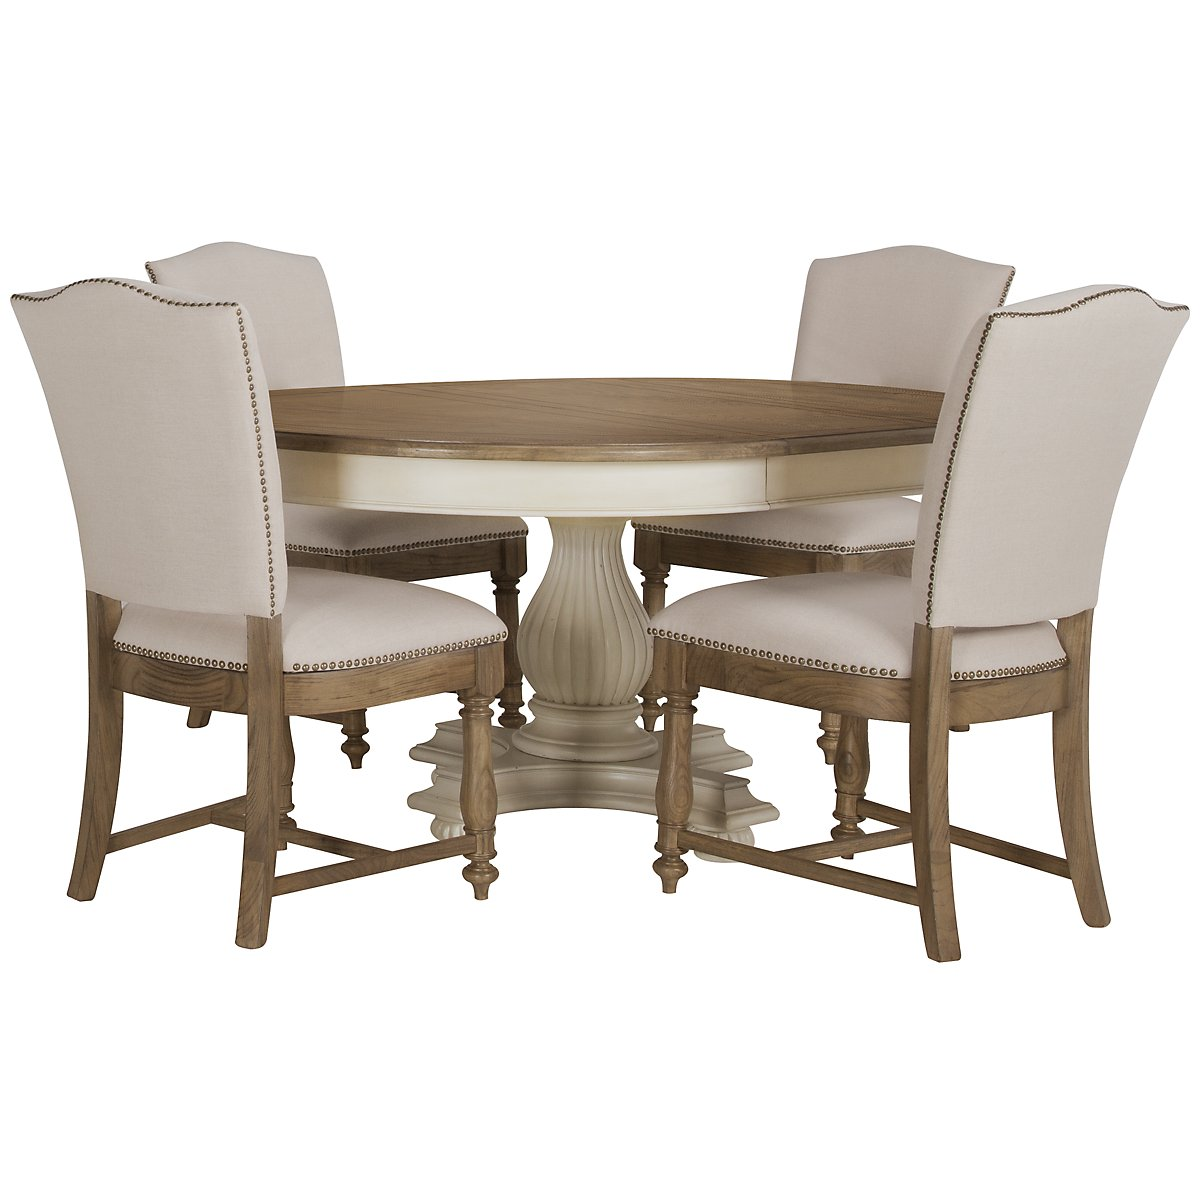 City furniture coventry two tone round table 4 for 2 dining room chairs